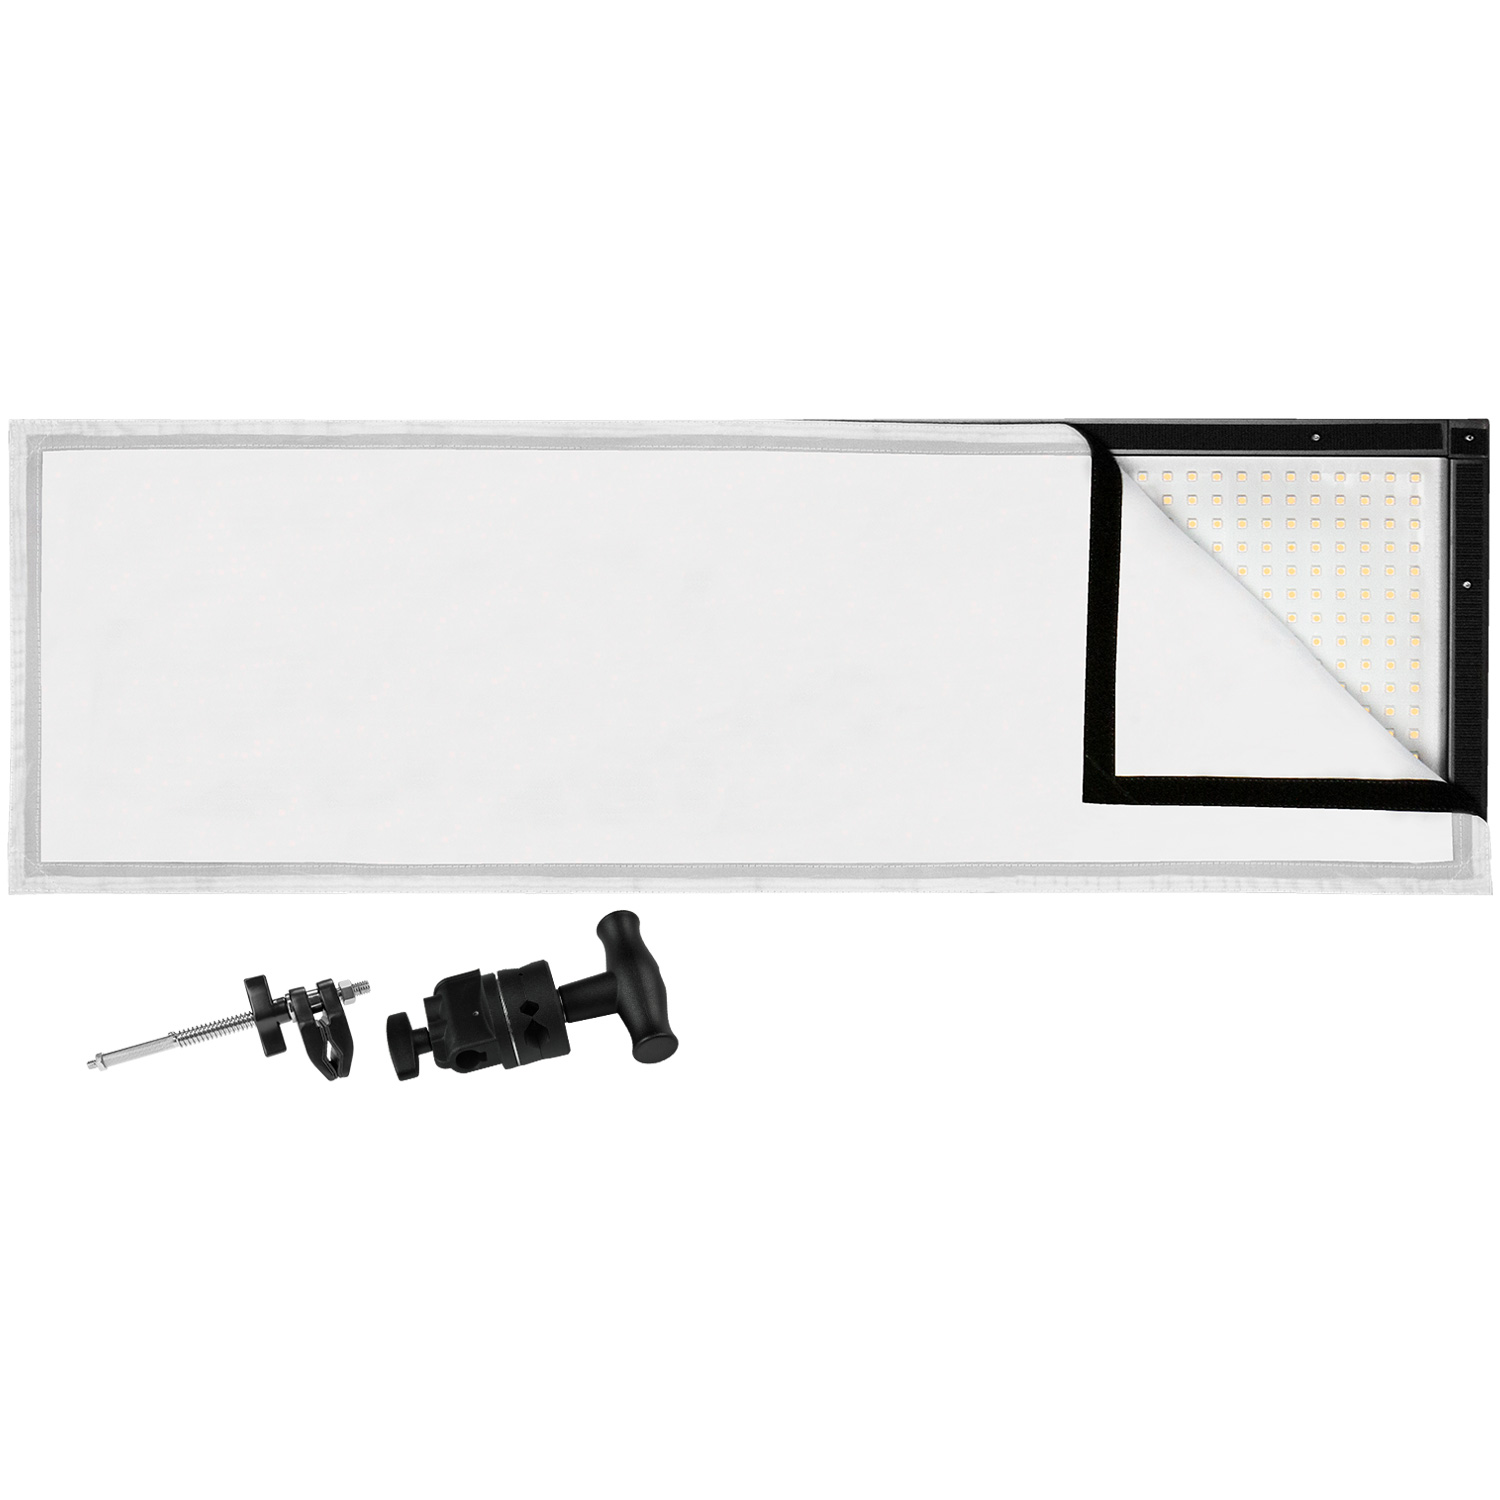 Original Flex Daylight LED 1-Light Set (1' x 3', US/CA Plug)